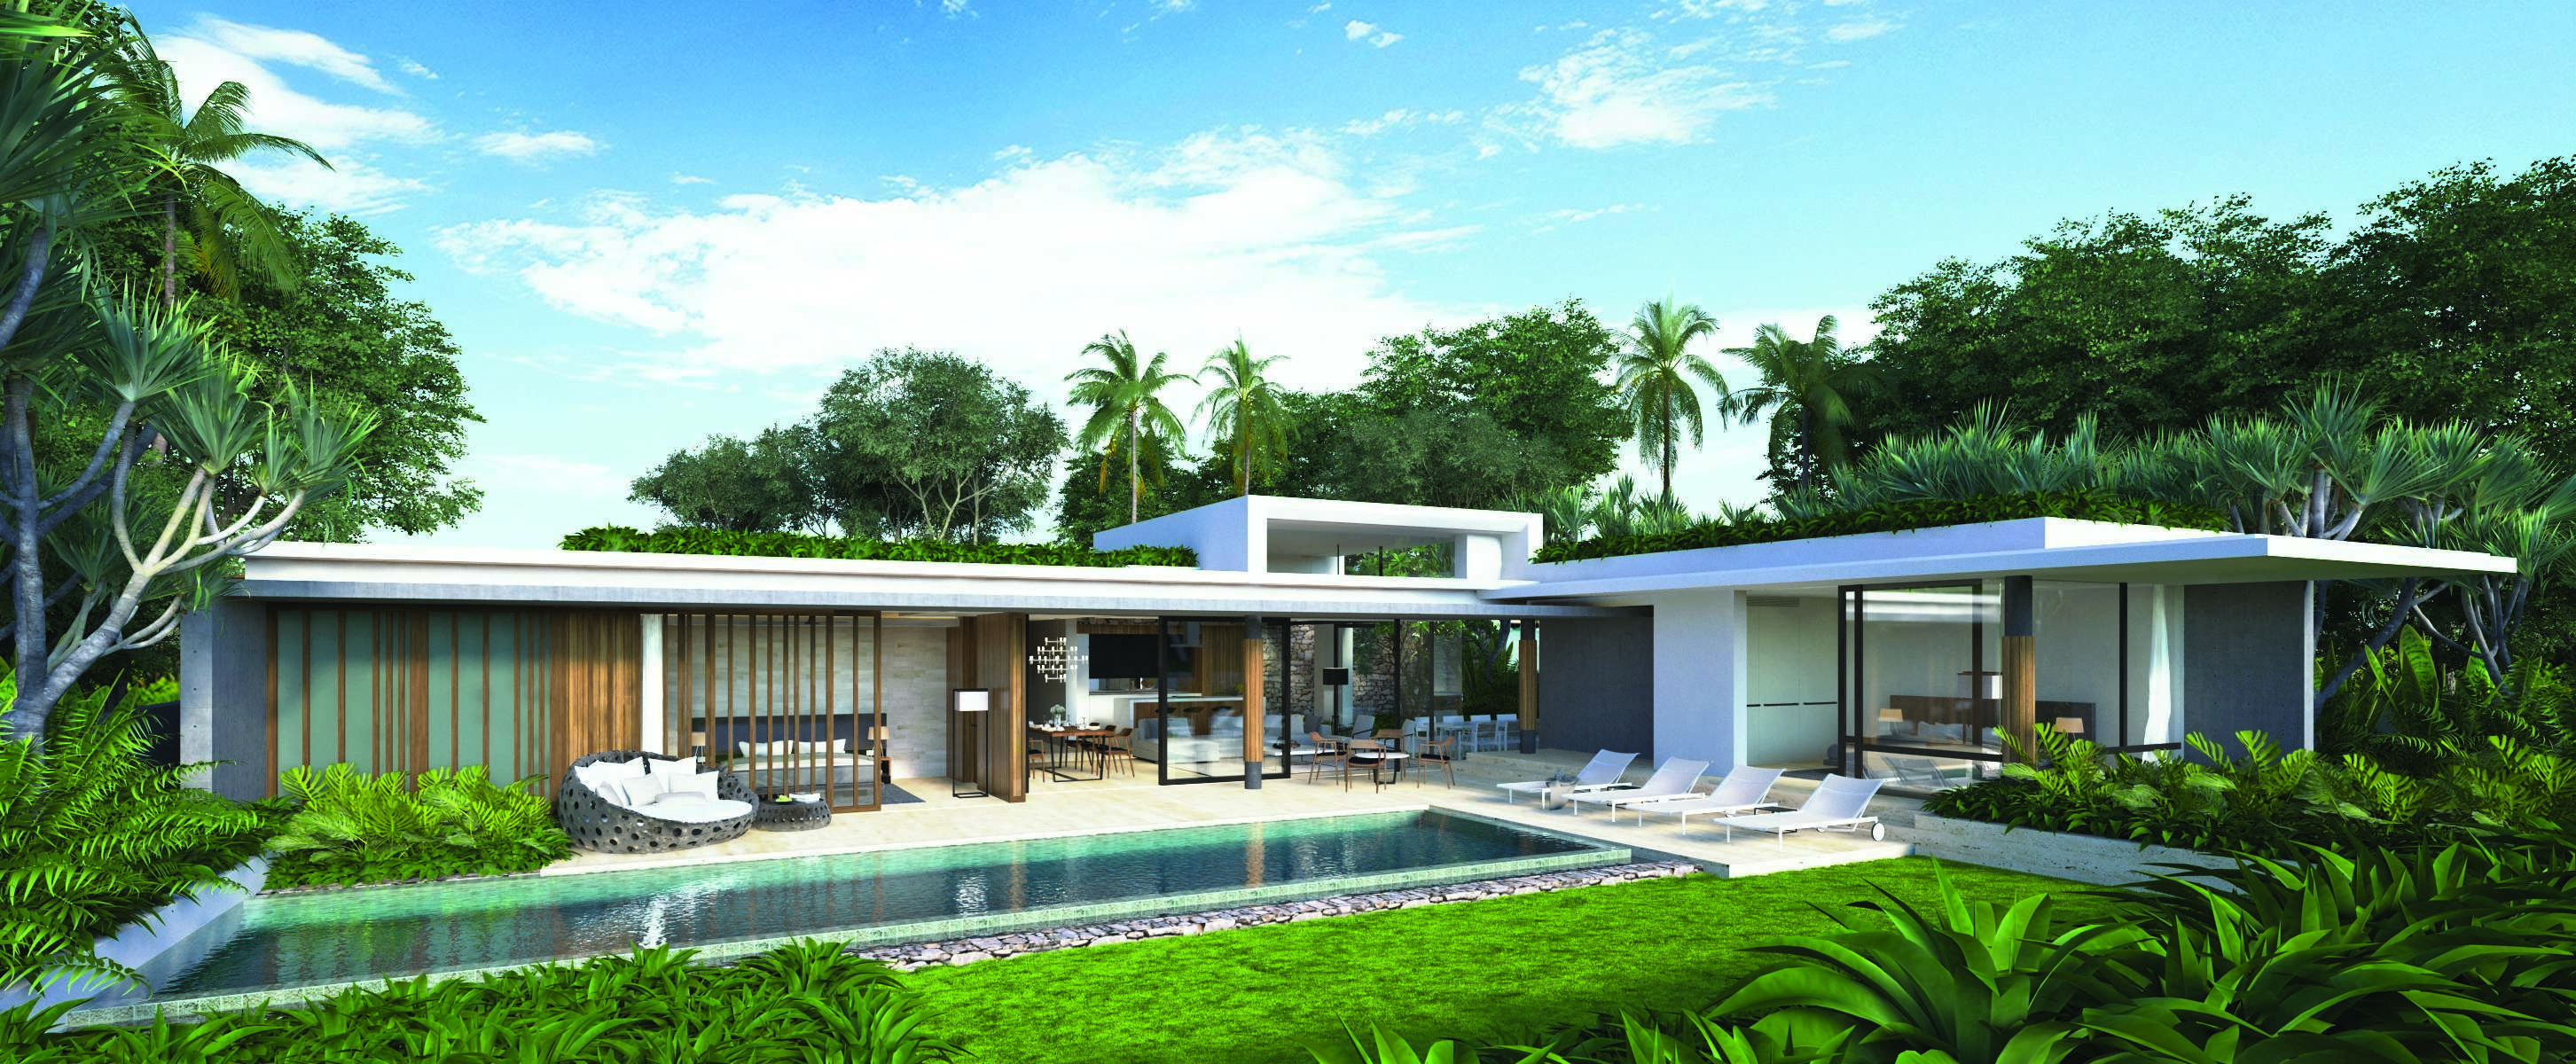 The pool villas at Sunplay Bangsaray